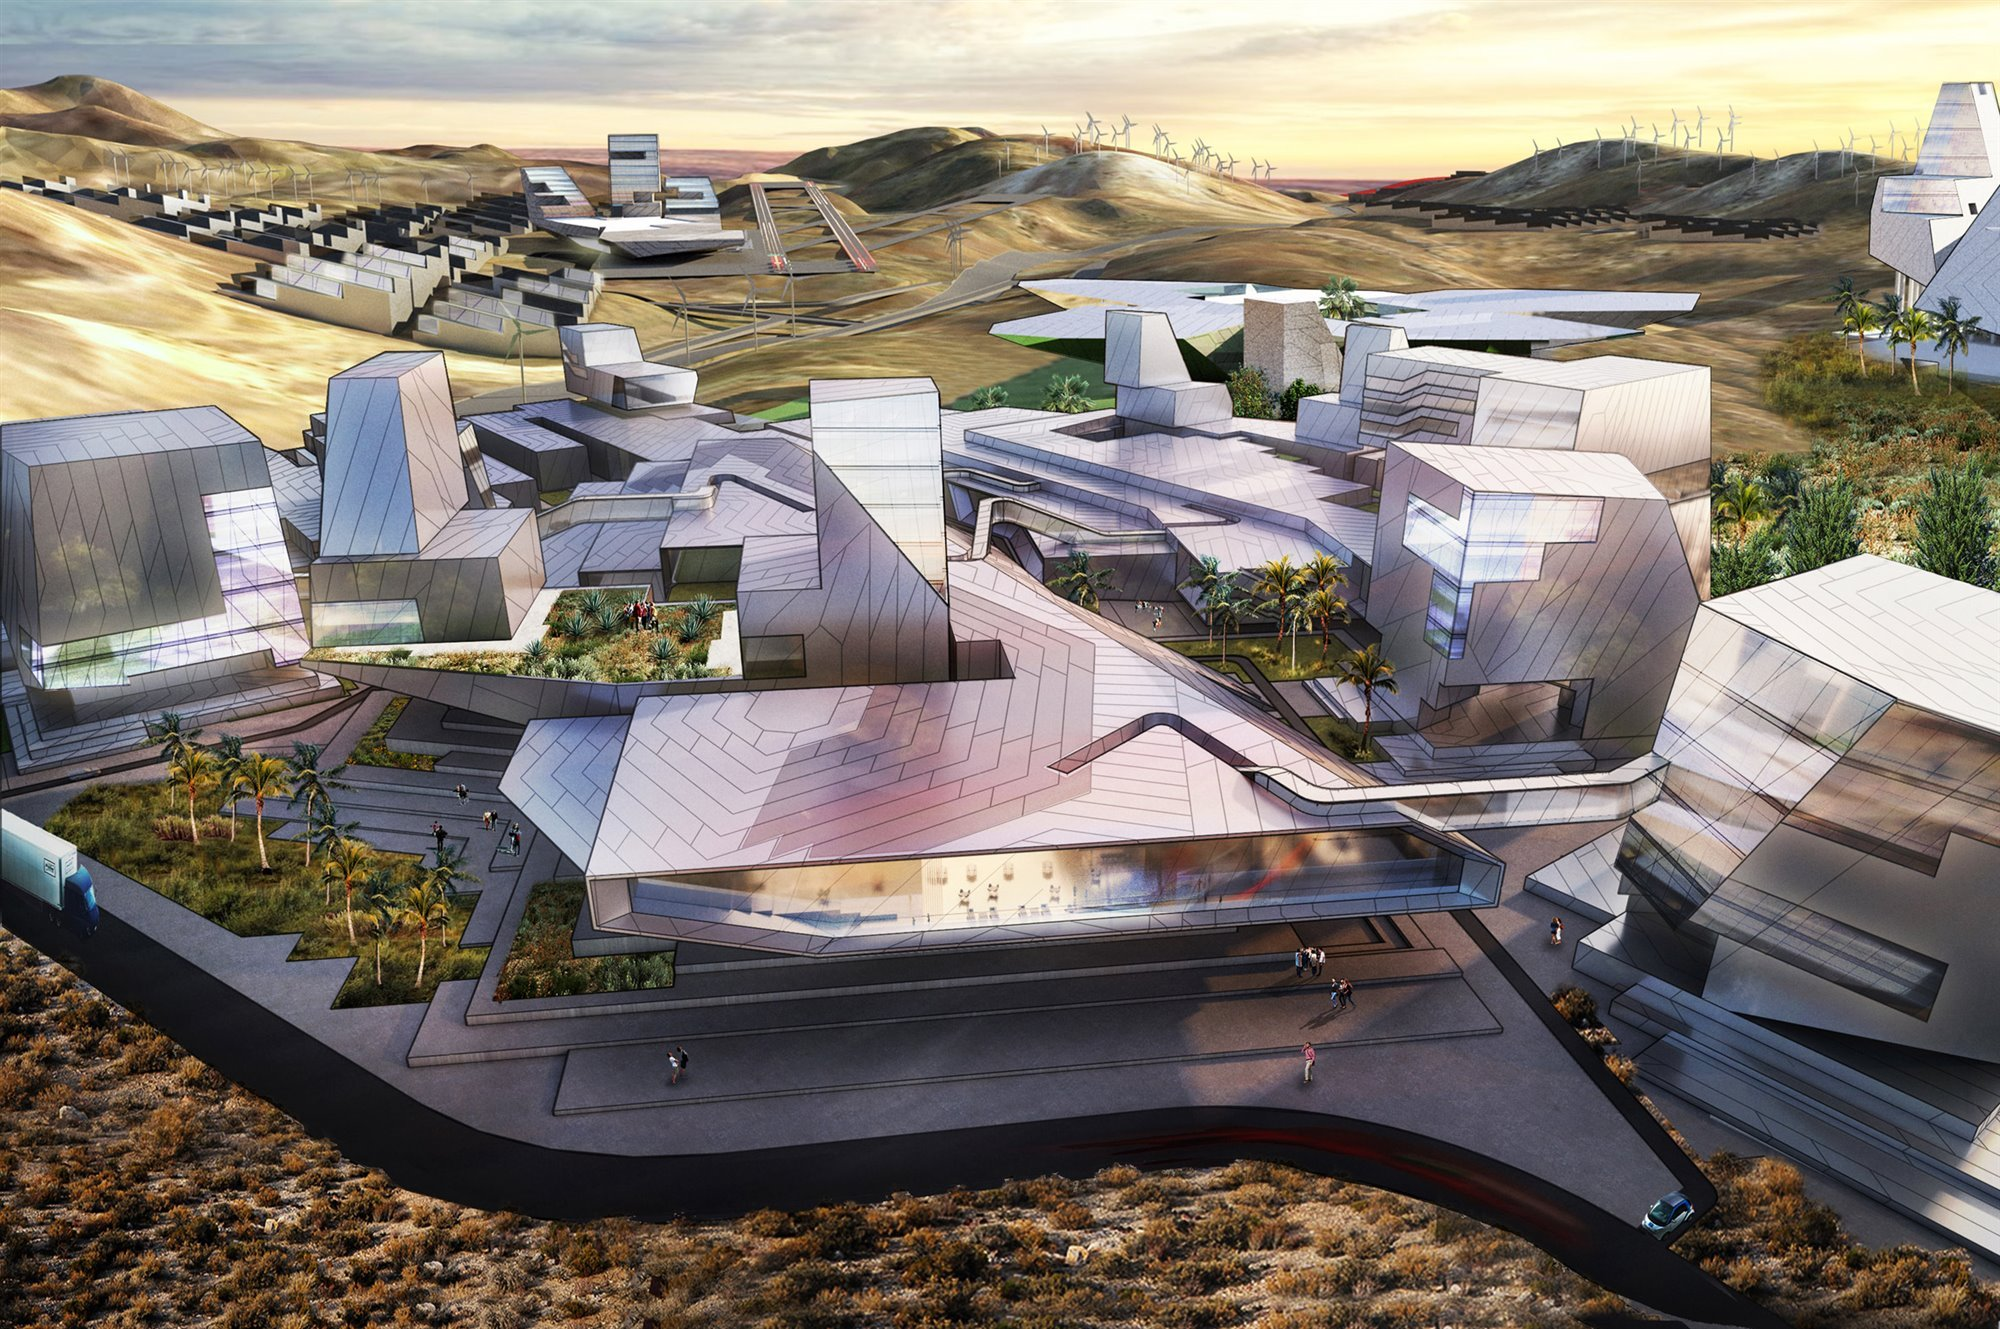 innovation-park-blockchains-smart-city-nevada-eyrc-architects-tom-wiscombe-architecture 4